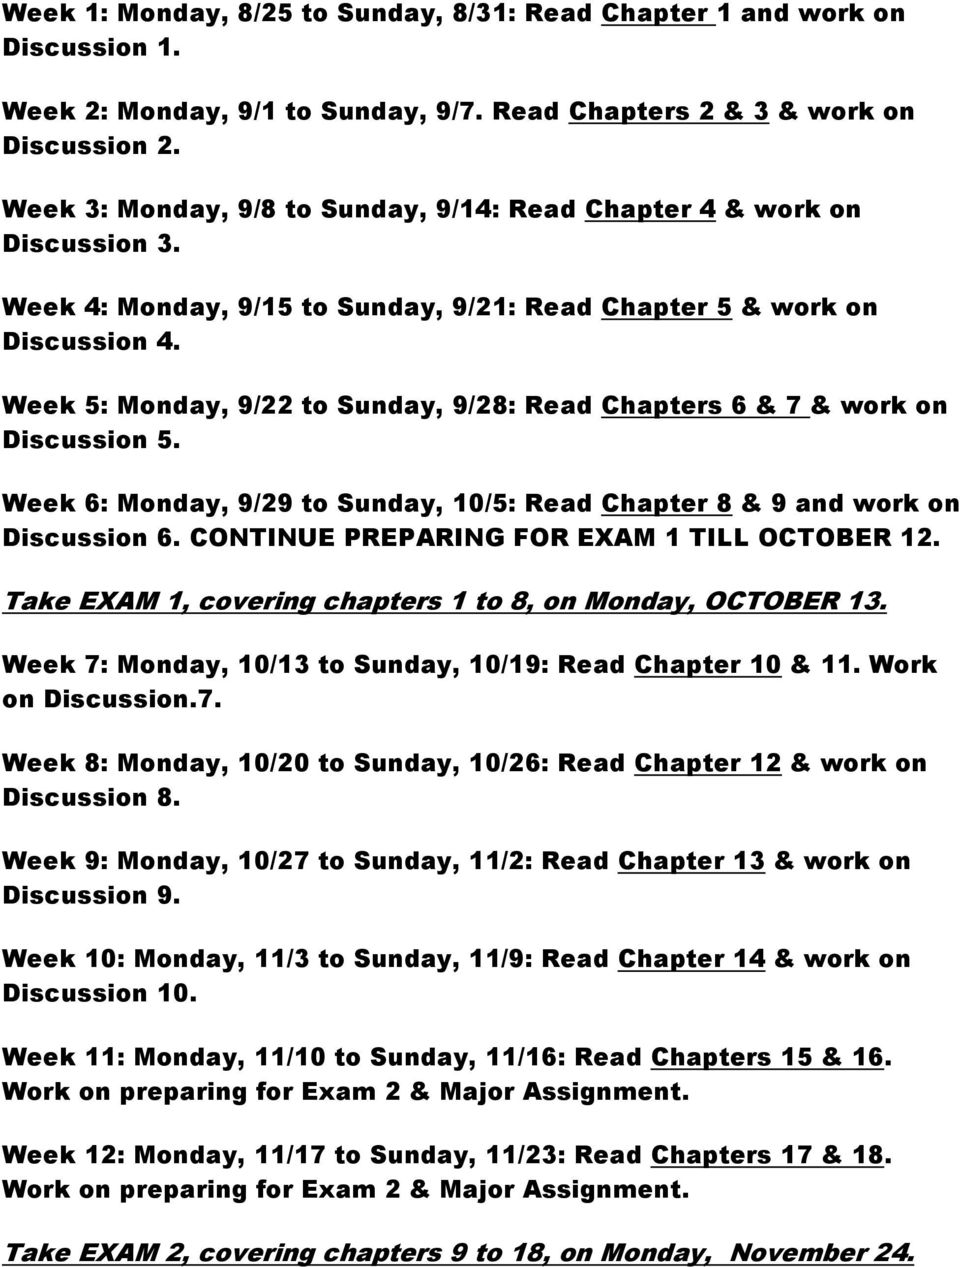 Week 5: Monday, 9/22 to Sunday, 9/28: Read Chapters 6 & 7 & work on Discussion 5. Week 6: Monday, 9/29 to Sunday, 10/5: Read Chapter 8 & 9 and work on Discussion 6.